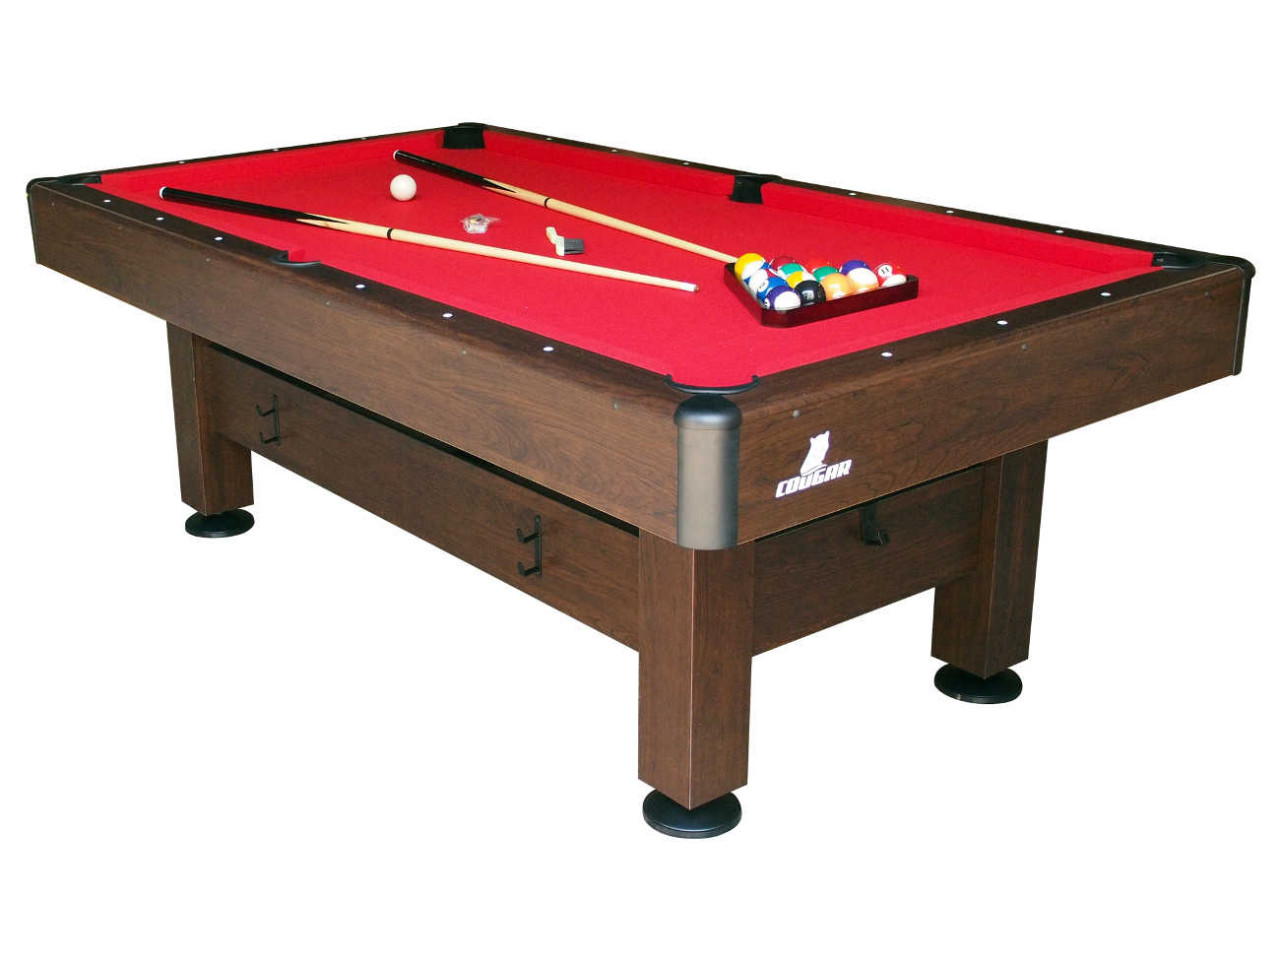 Billardtisch Saphir, Billard, Pool, Poolbillard